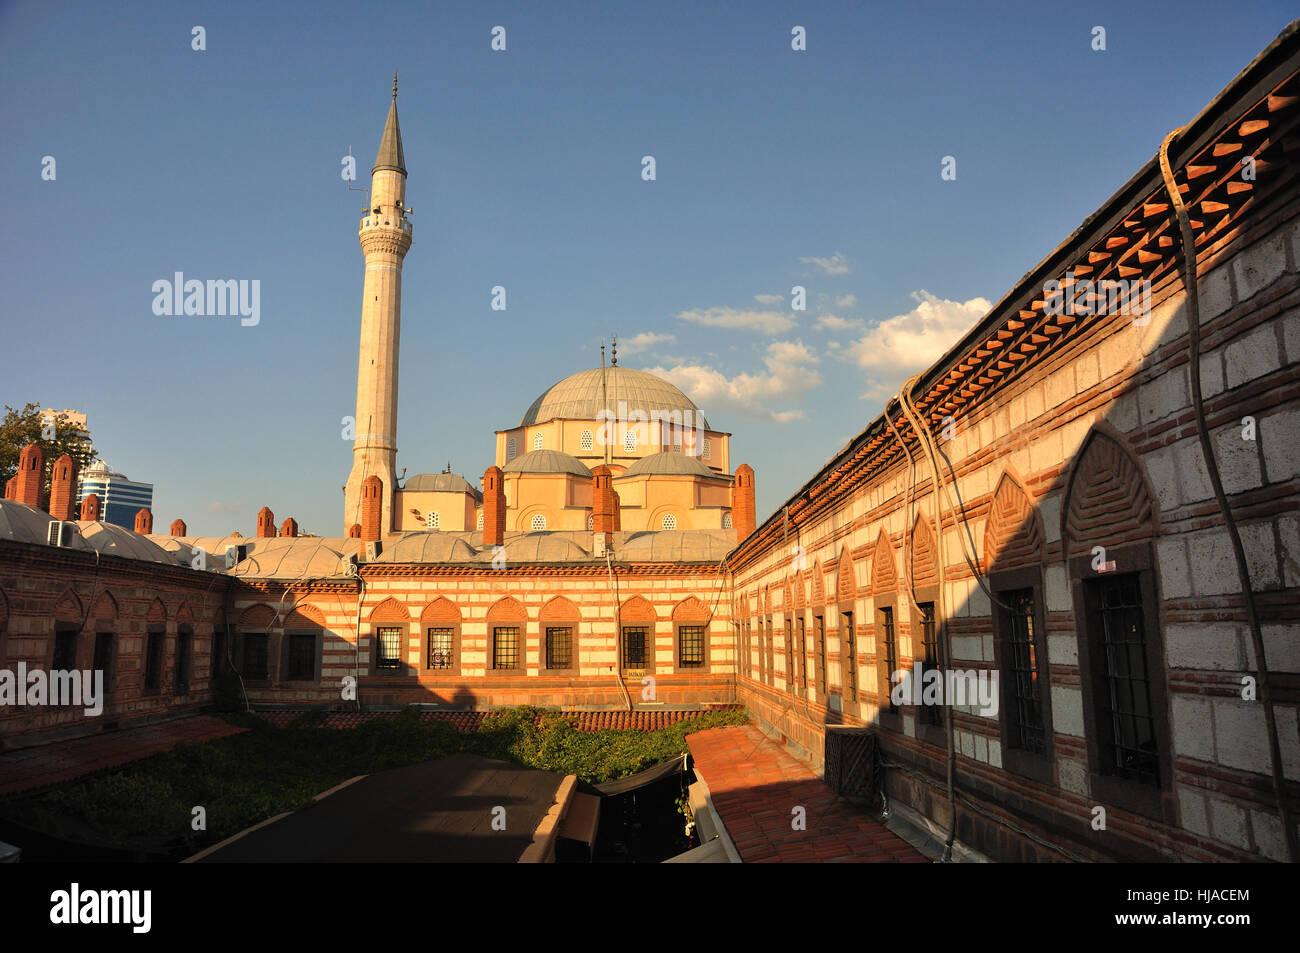 Hisar mosque izmir stock photos hisar mosque izmir stock images blue big large enormous extreme powerful imposing immense thecheapjerseys